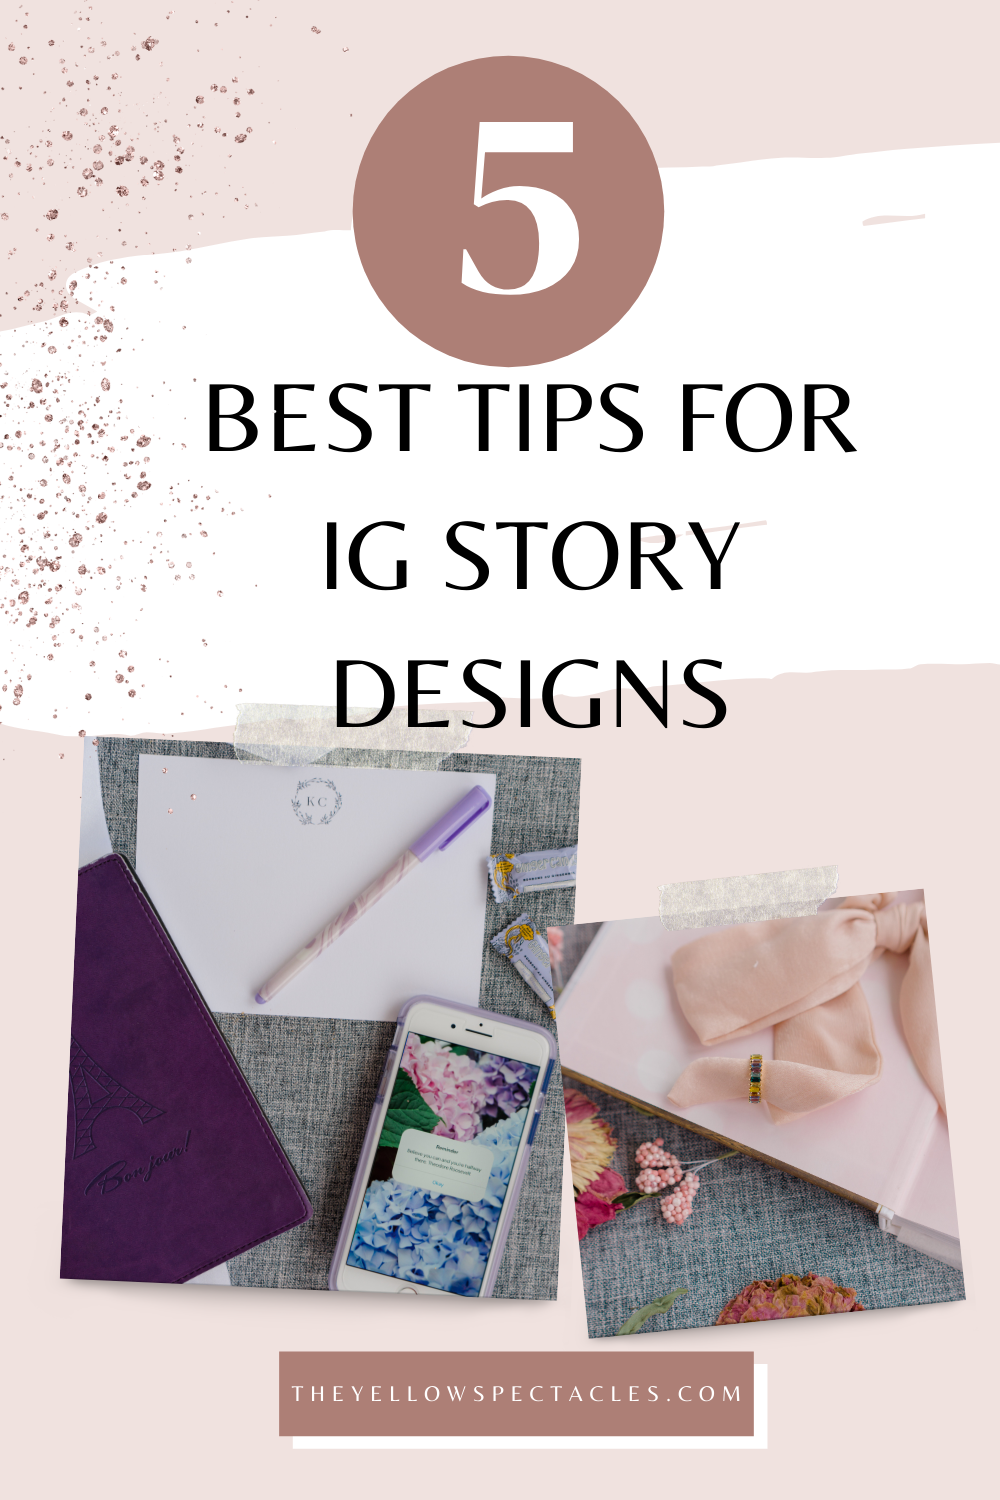 Five Tips to Creating Aesthetically Consistent Instagram Stories @Katelynchef on Instagram